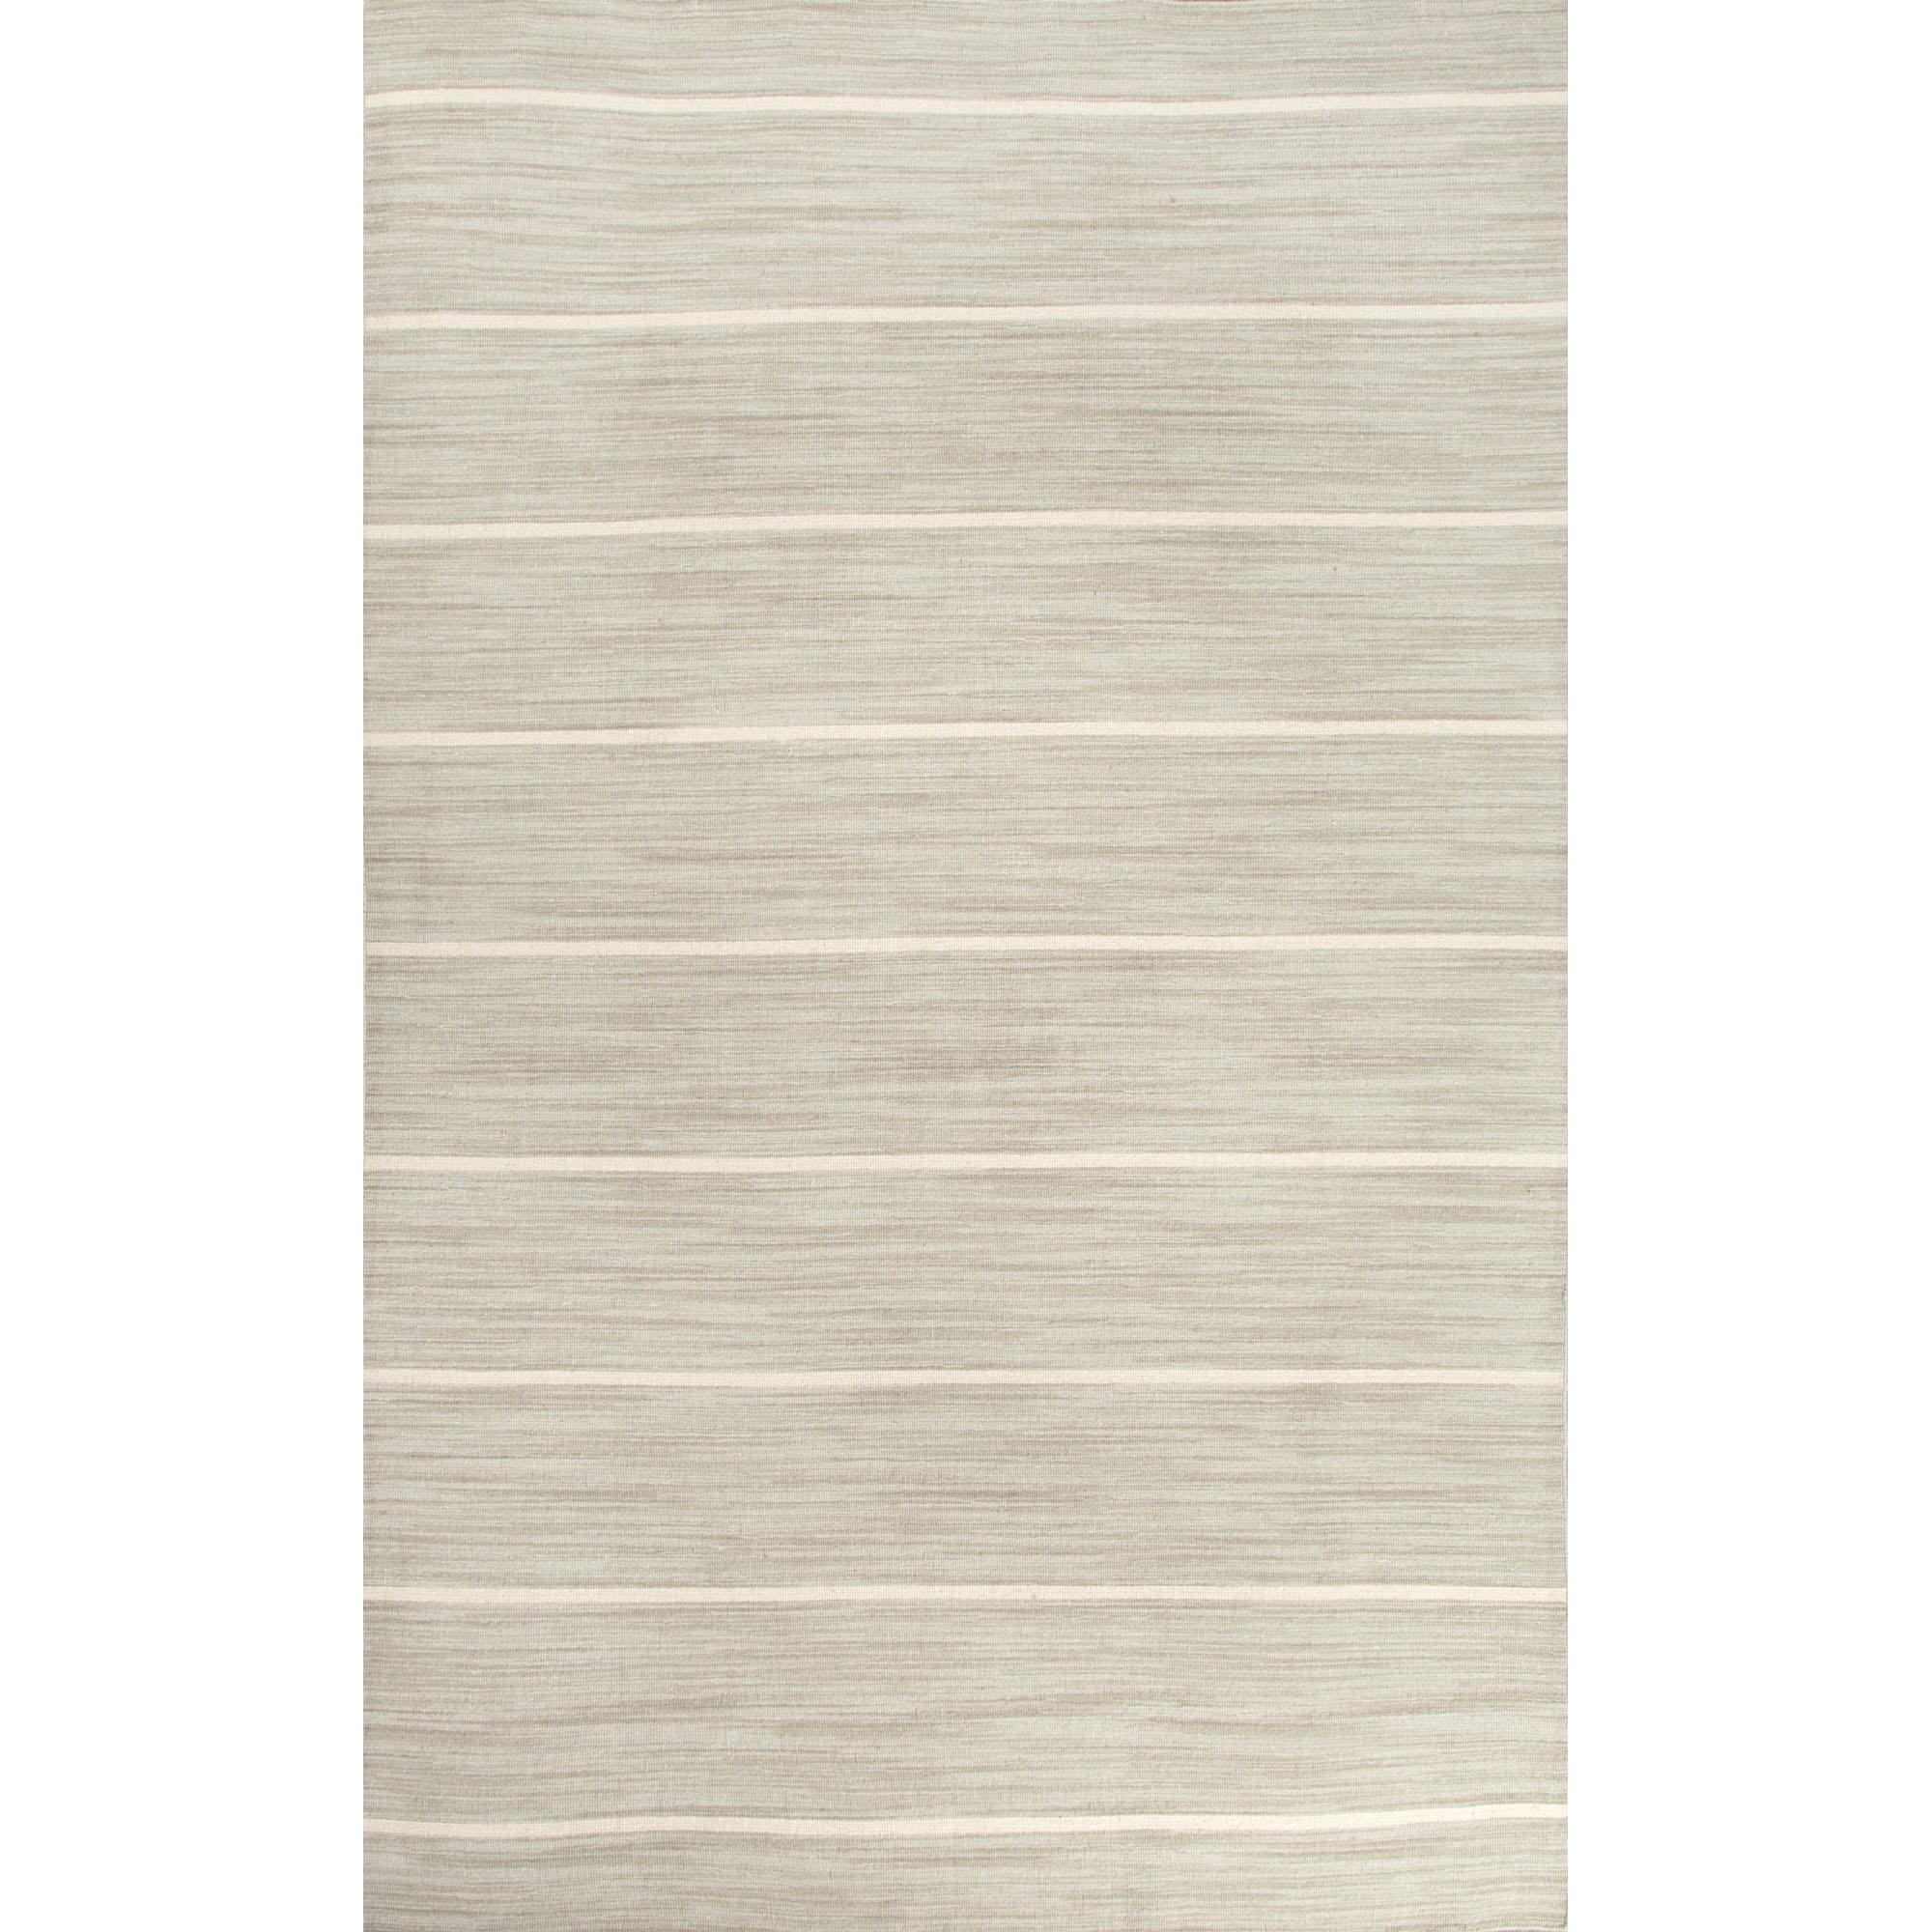 JAIPUR Rugs Coastal Shores 2 x 3 Rug - Item Number: RUG122735